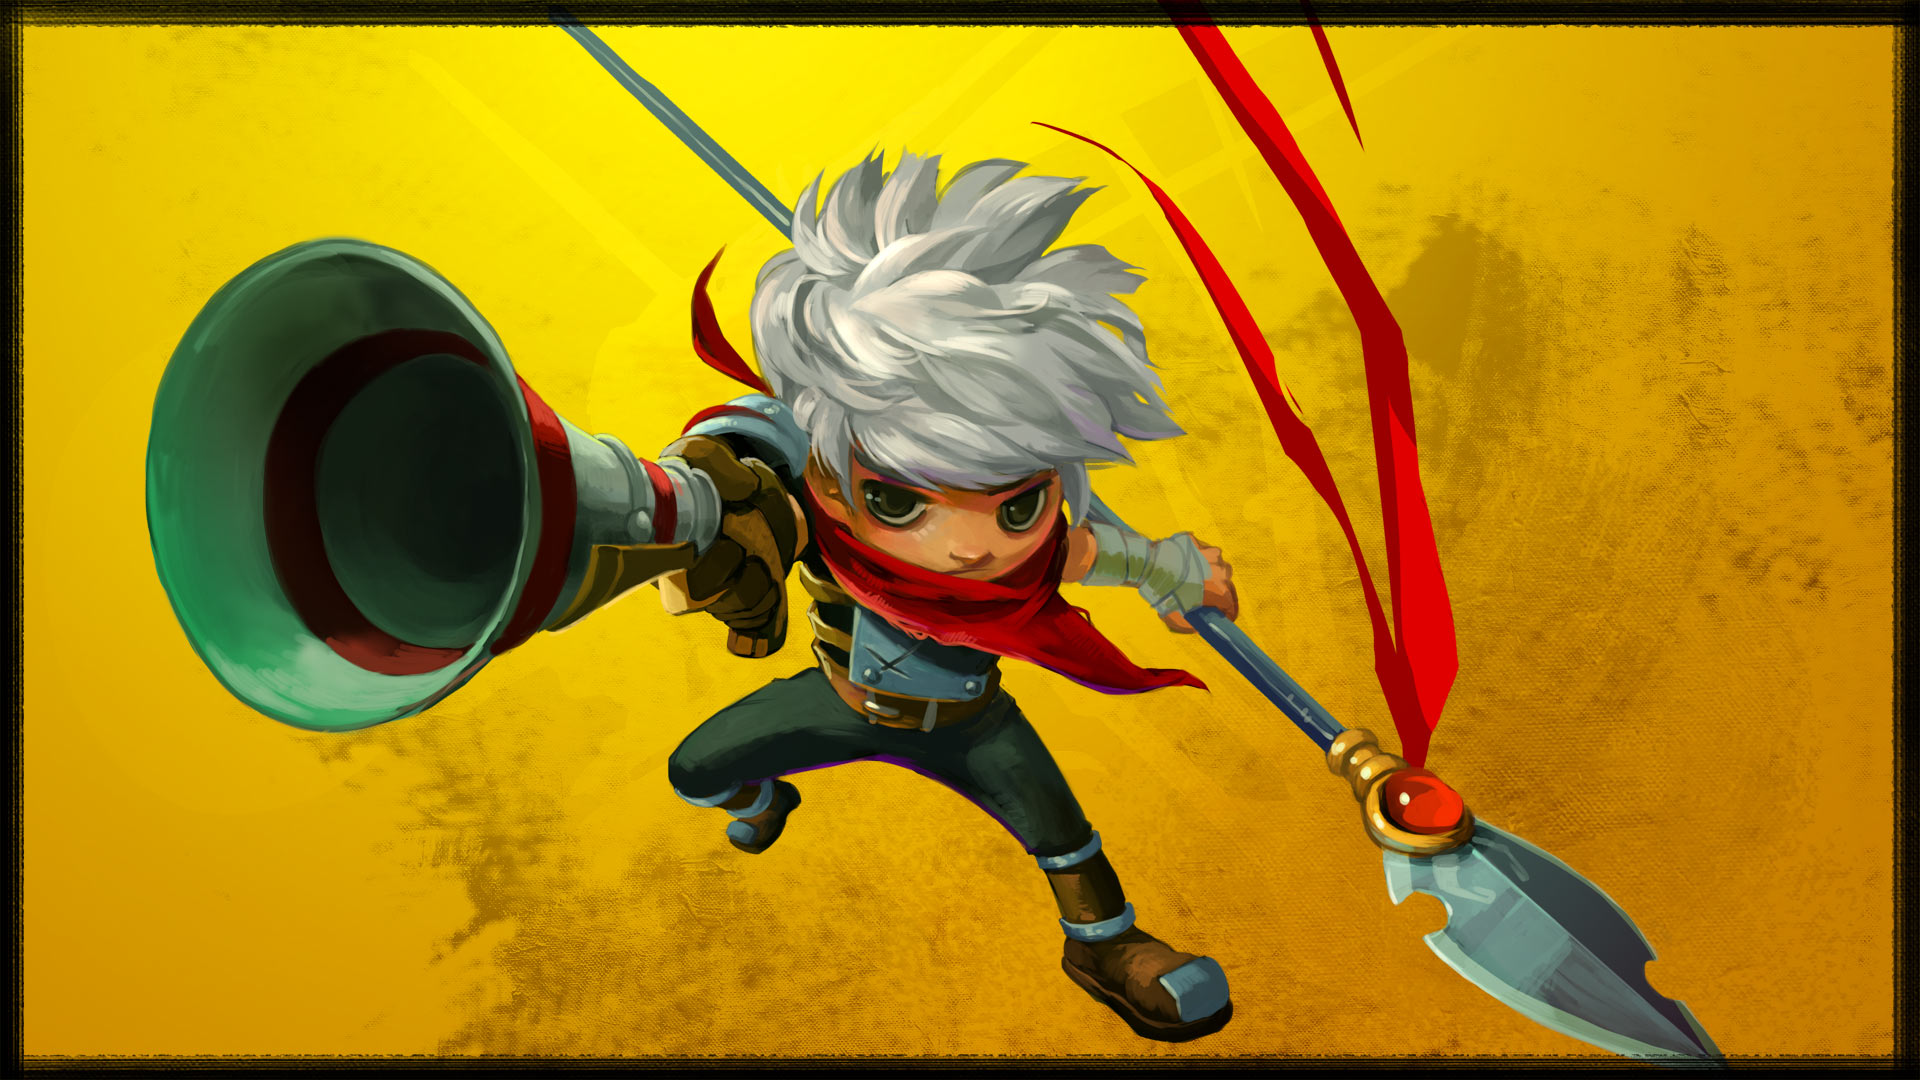 Bastion hd wallpaper background image 1920x1080 id 434498 wallpaper abyss - Bastion wallpaper ...